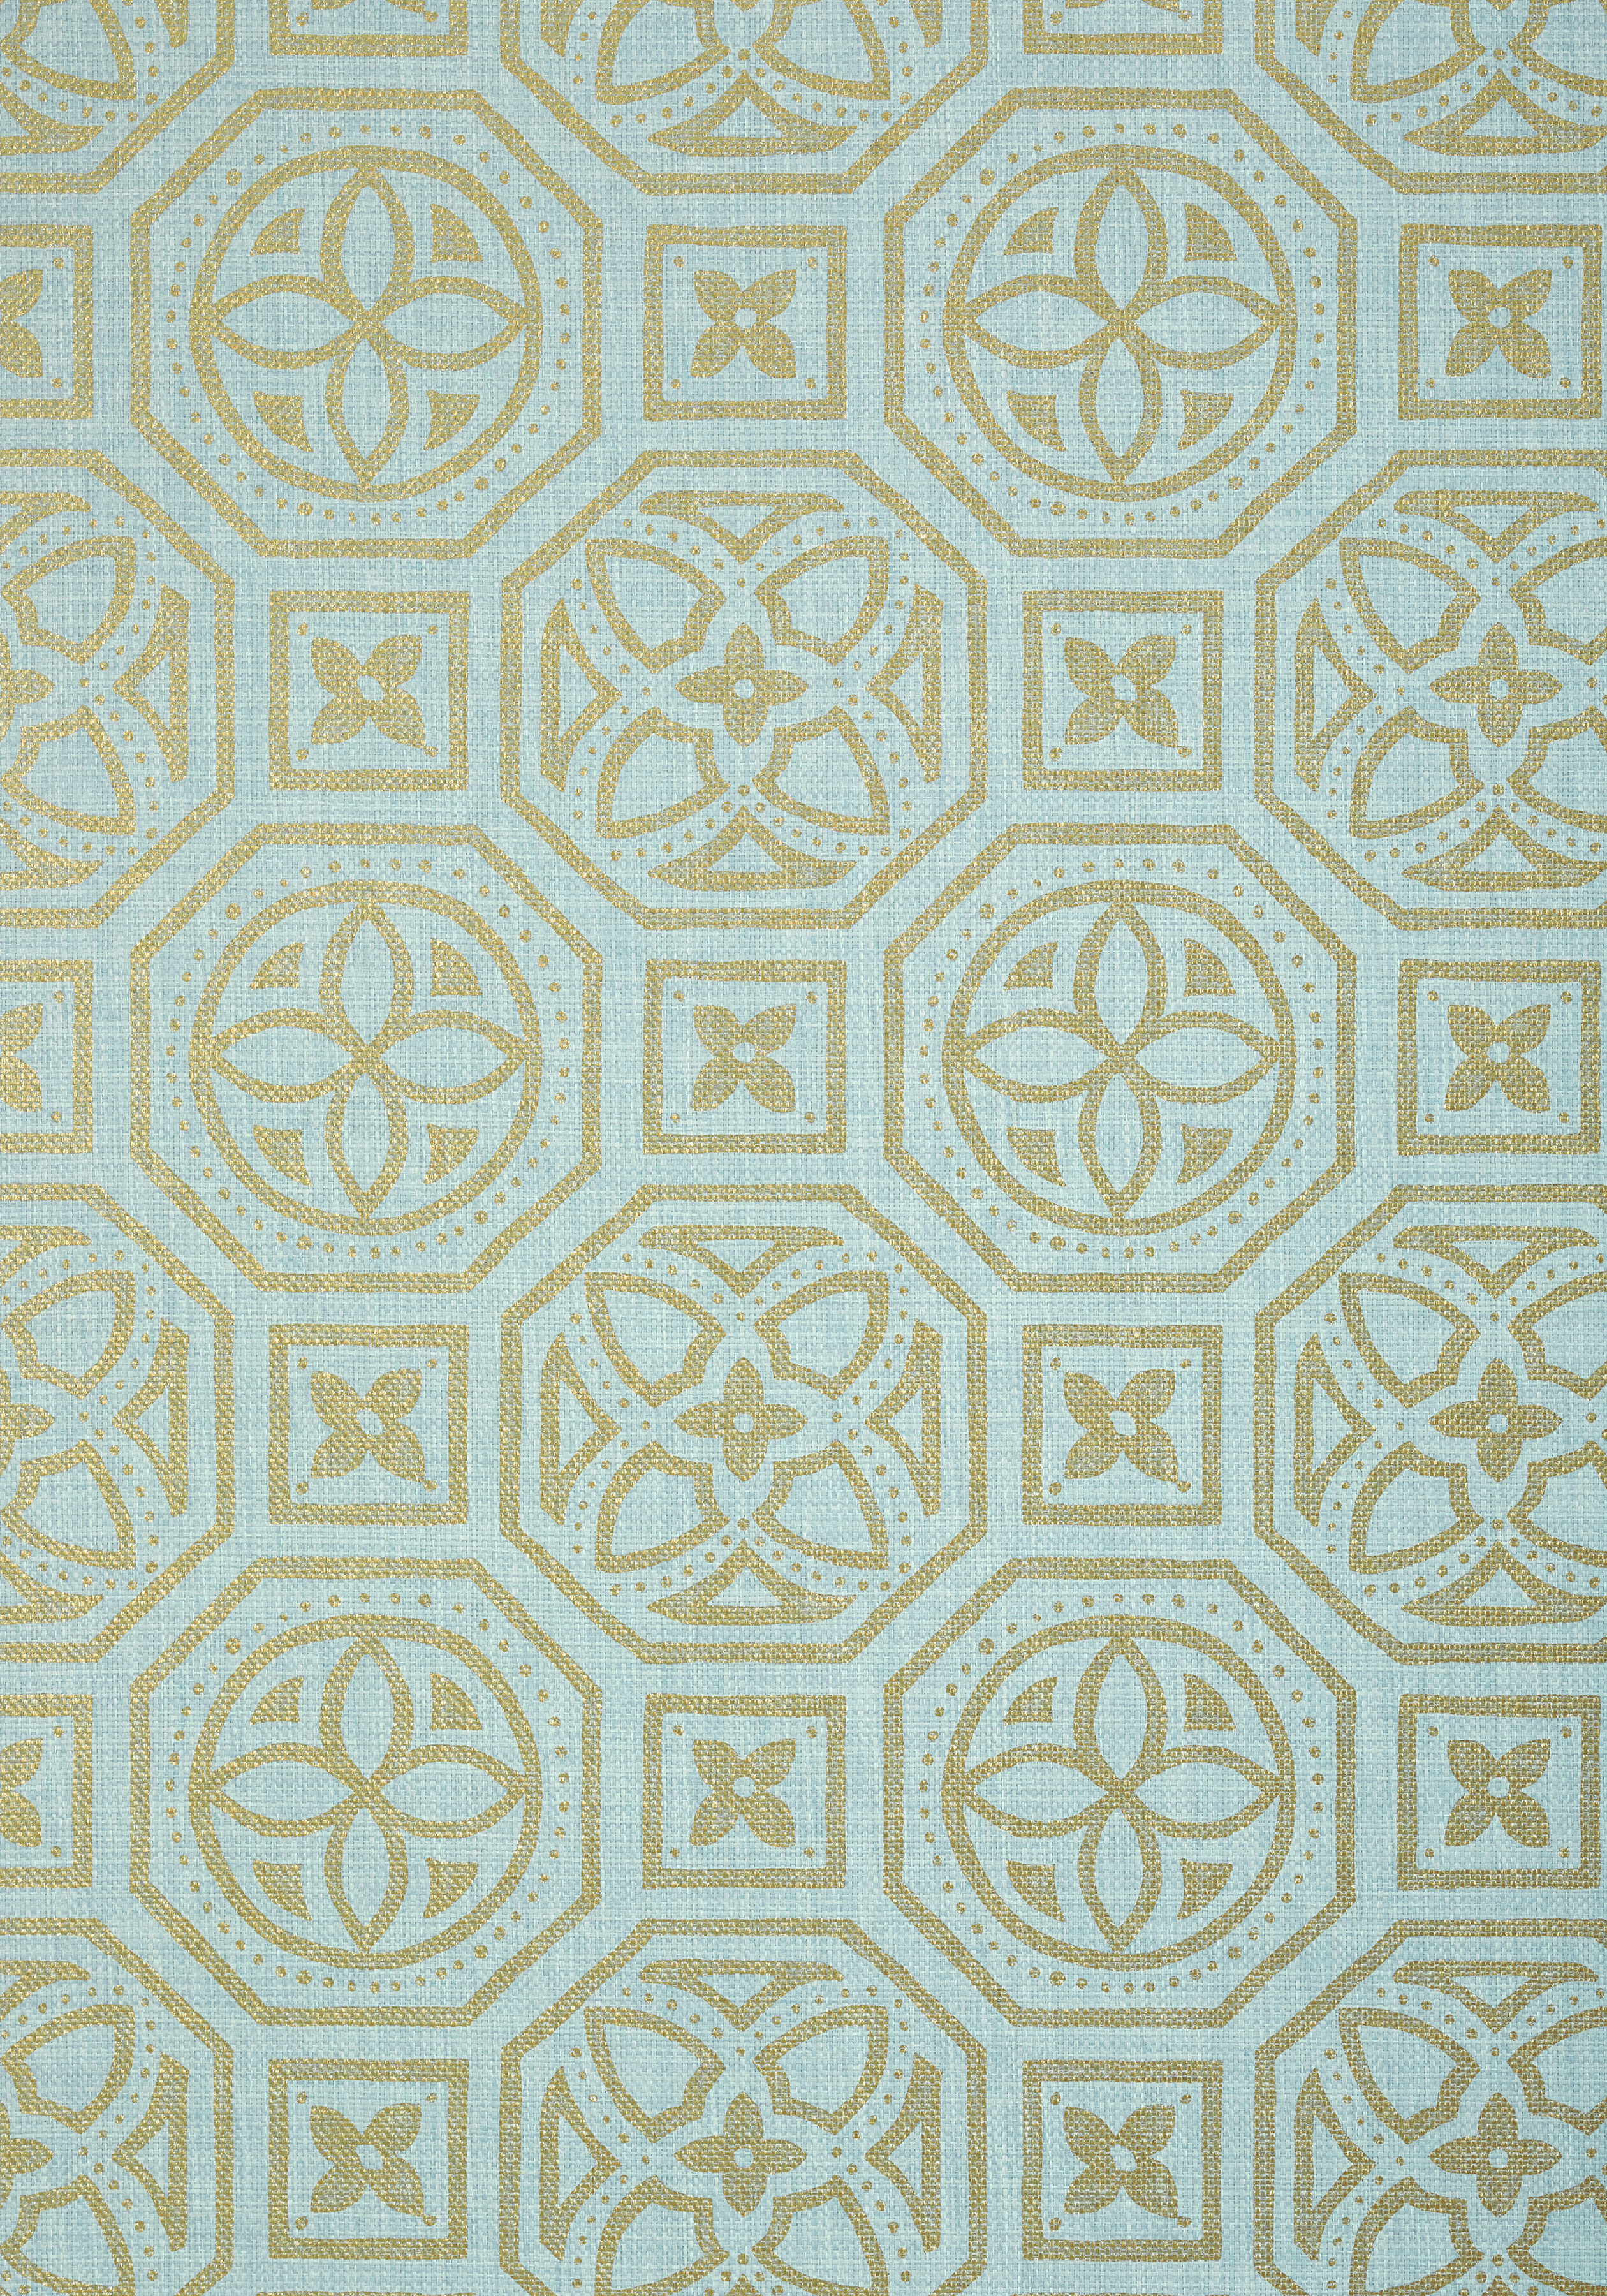 ALEXANDER-Metallic-Gold-on-Blue-T-Collection-Natural-Resource-from-Thibaut-wallpaper-wp3003070